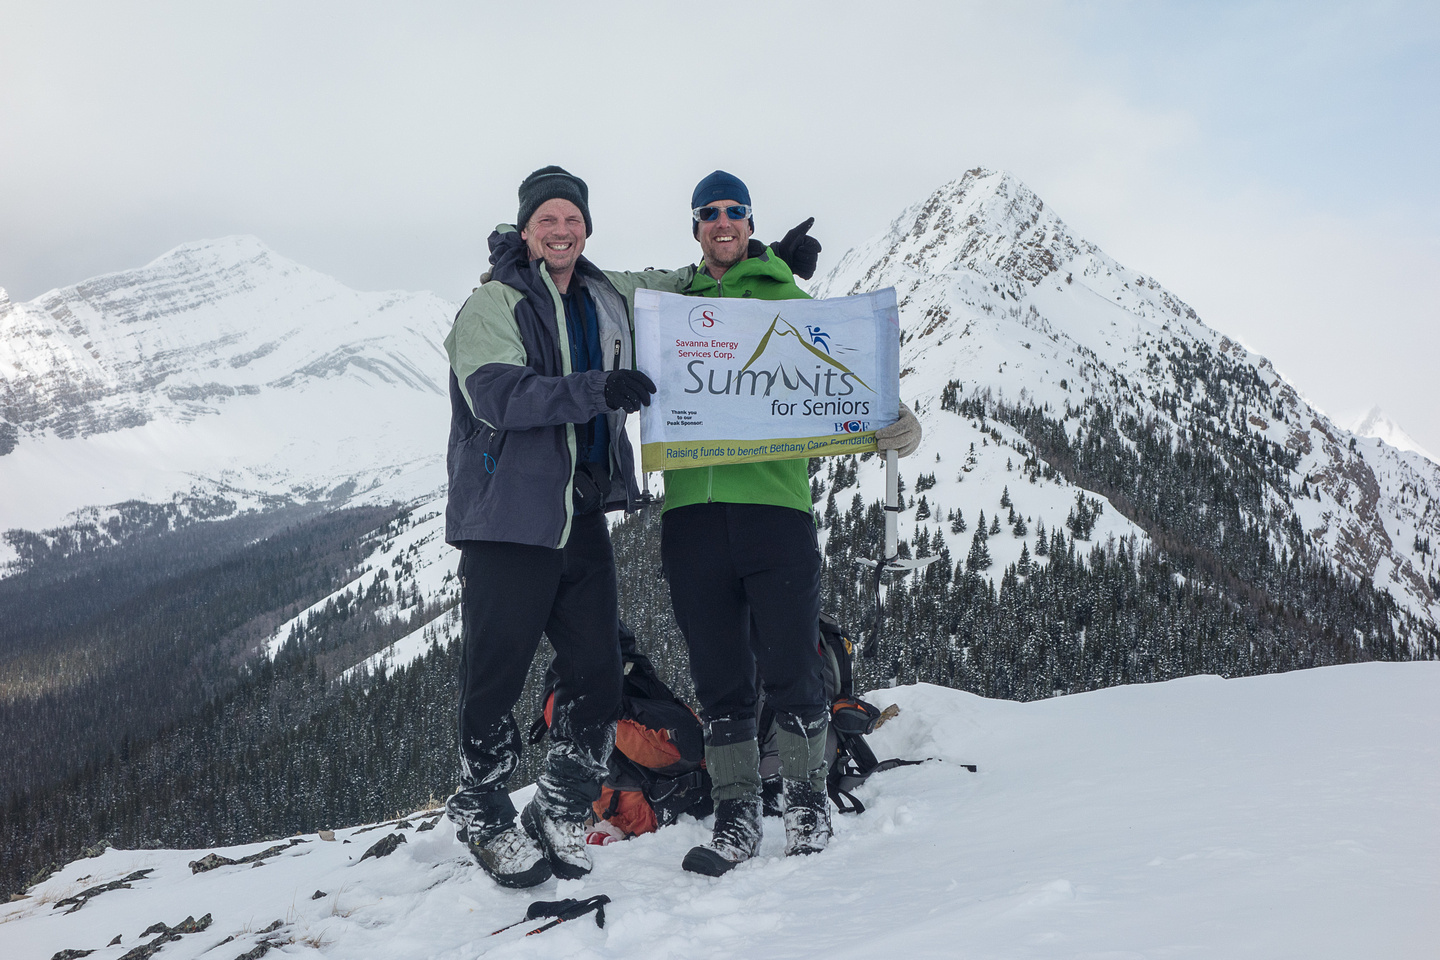 Vern and Kev celebrate his 50th summit on Little Lawson.